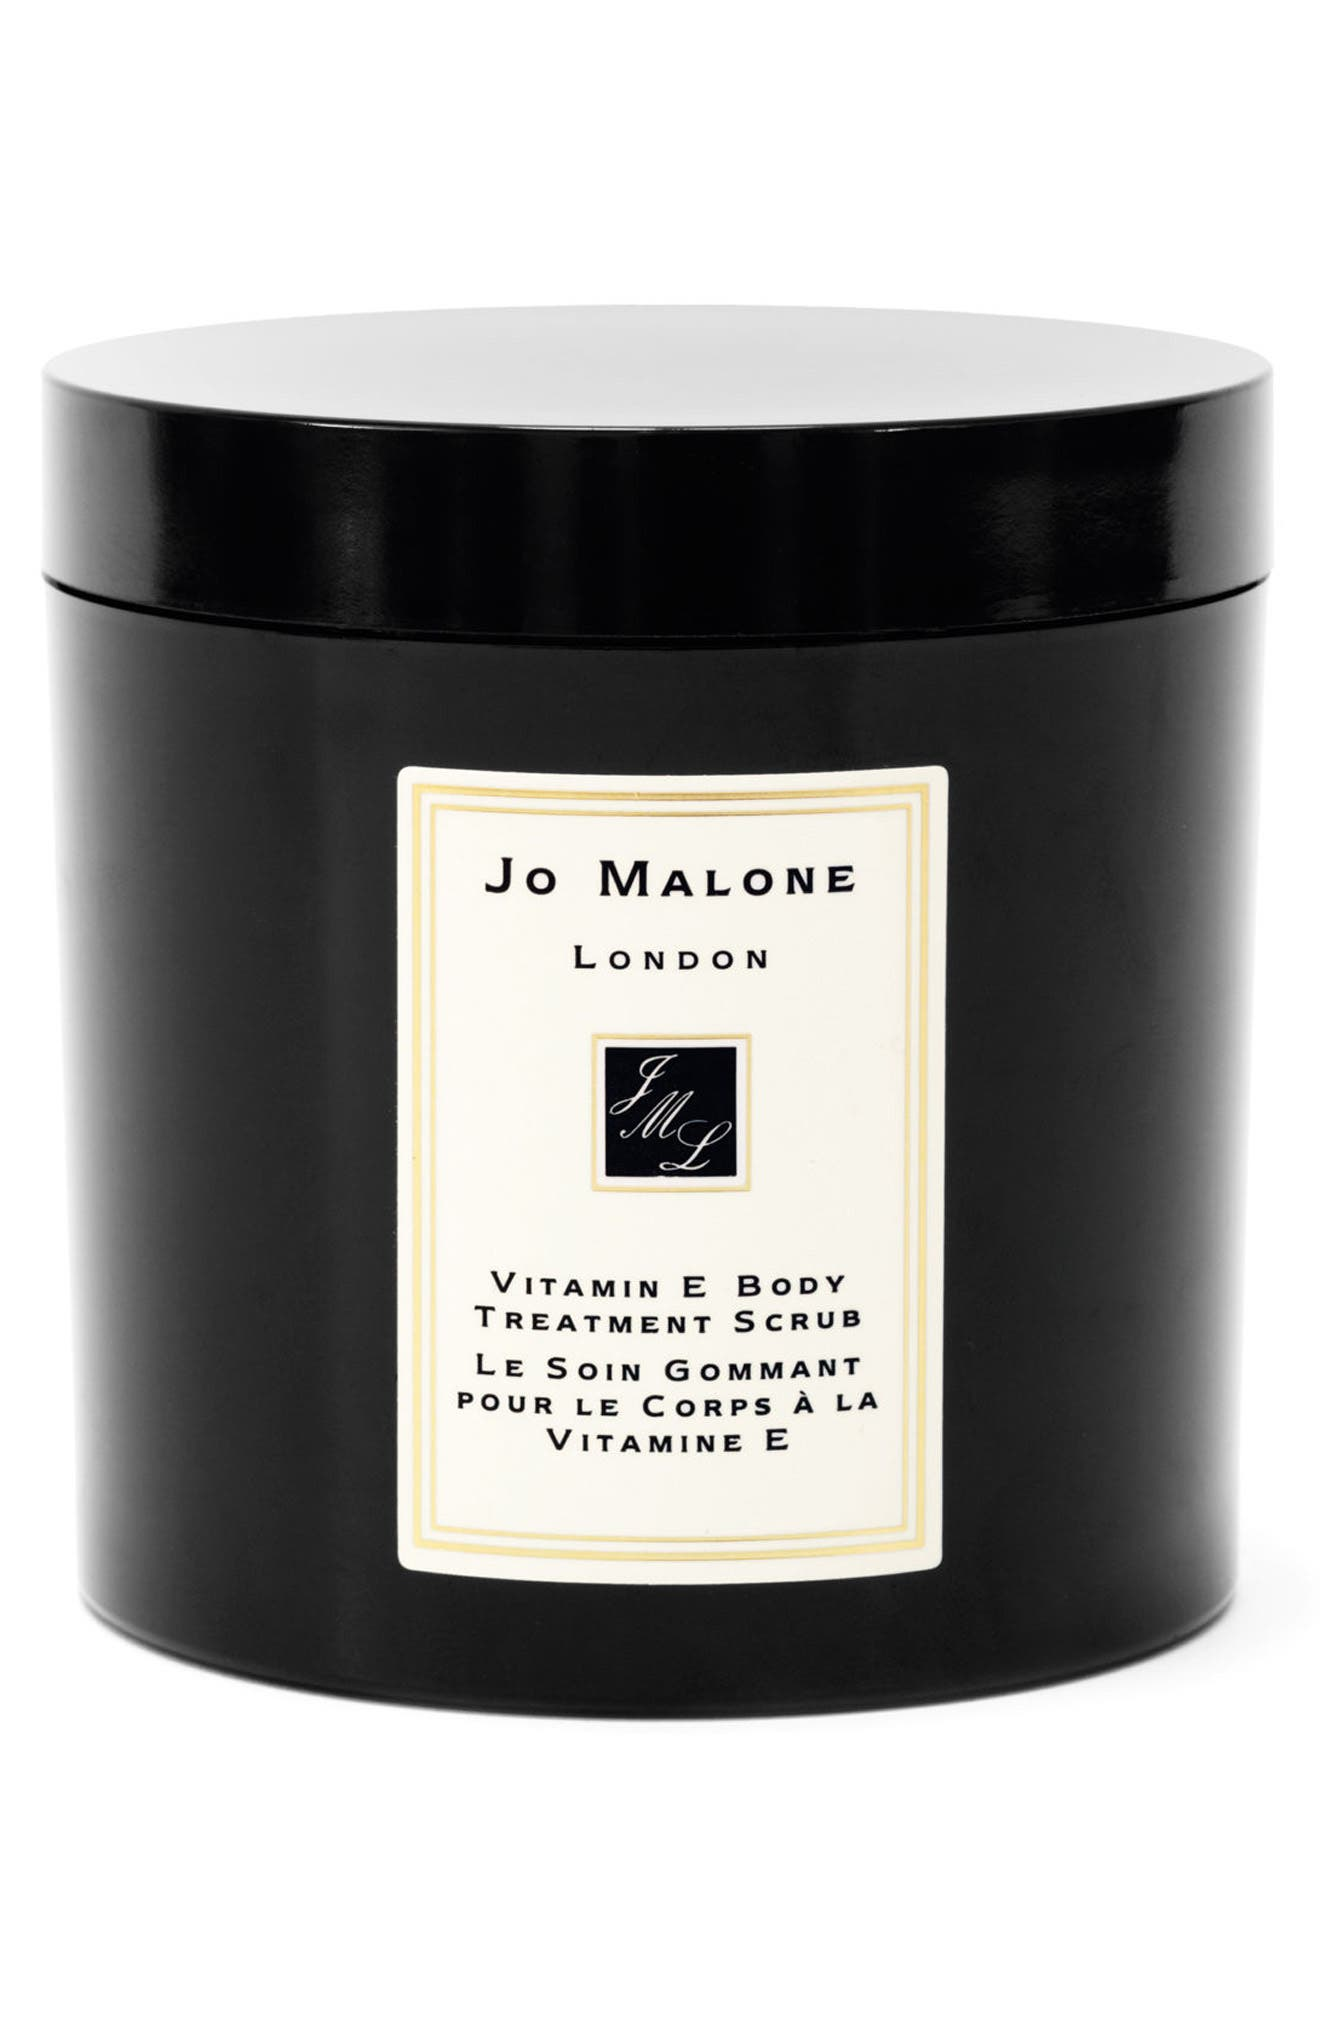 Jo Malone London™ 'Vitamin E' Body Treatment Scrub